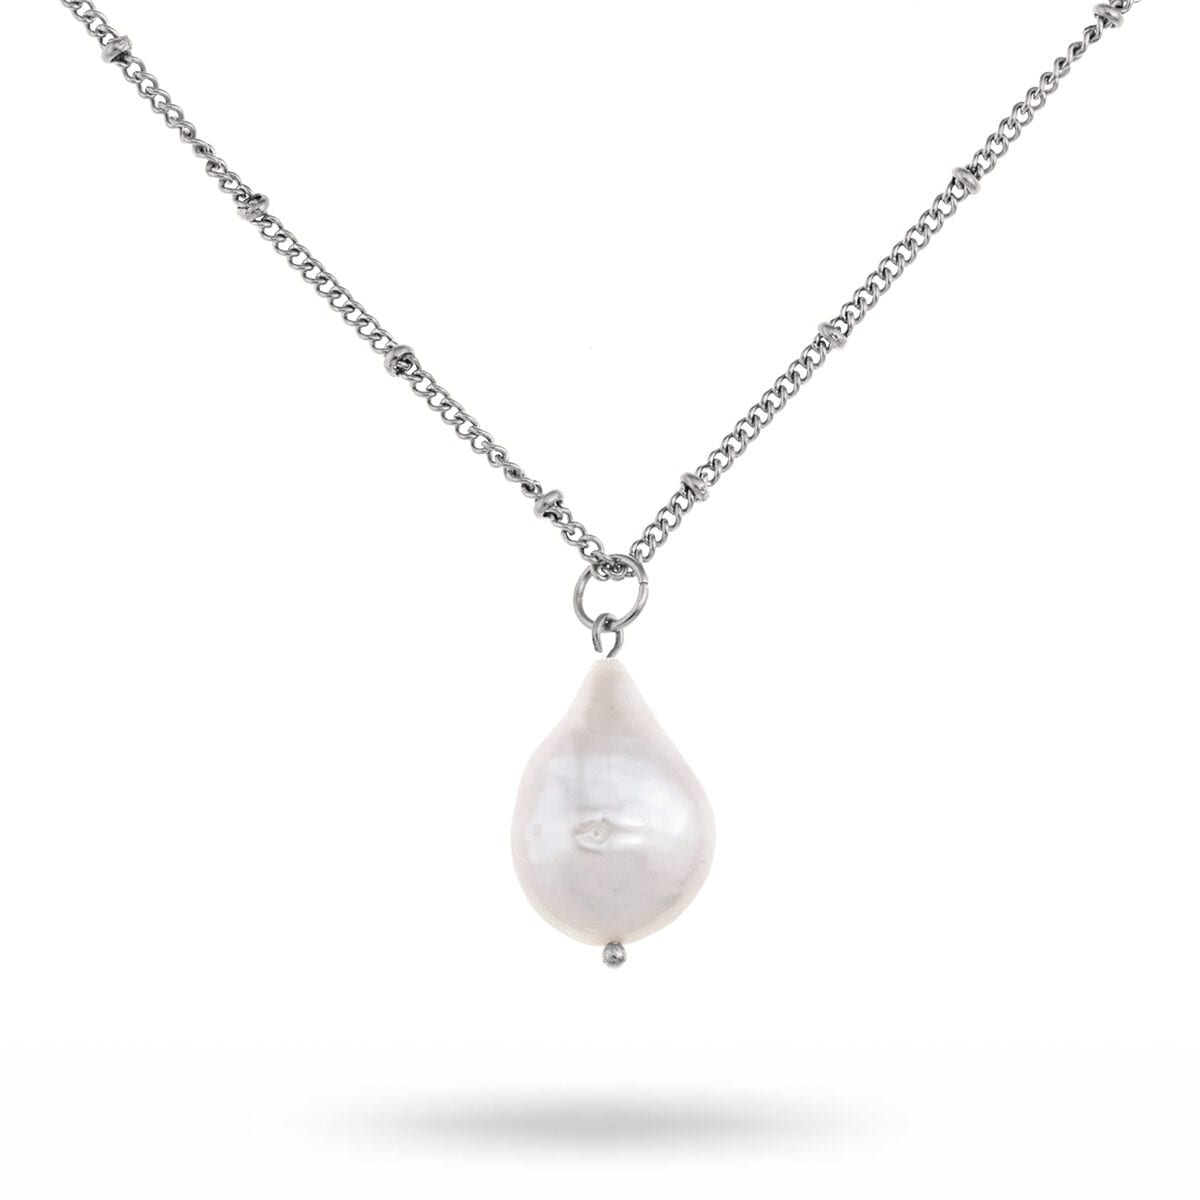 Theodra-necklace-silver